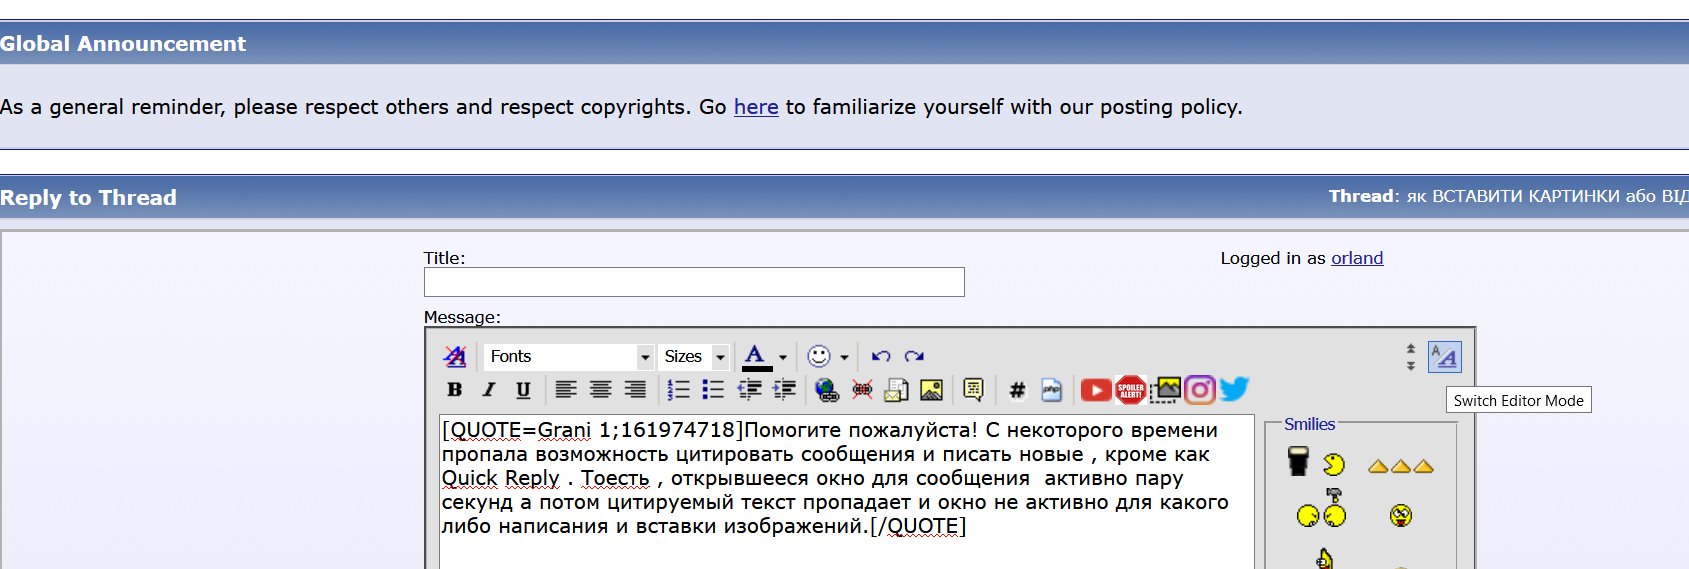 ScreenHunter_706 Сен. 03 16.20.png